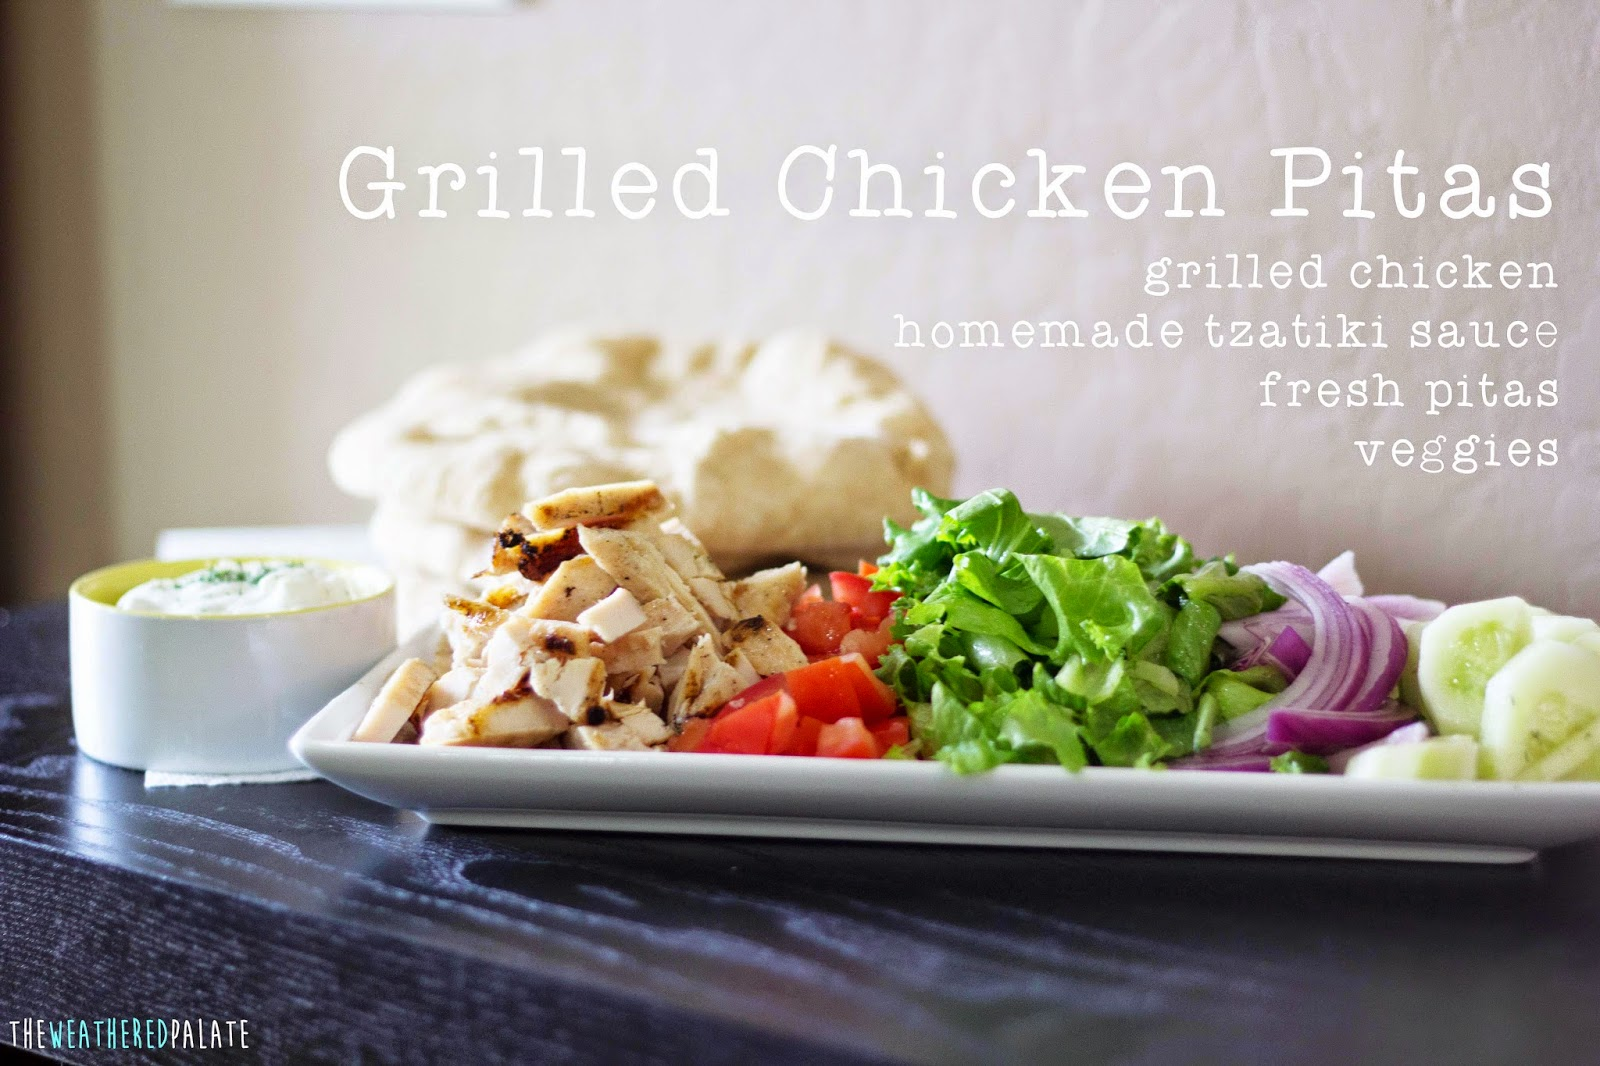 http://www.theweatheredpalate.com/2014/09/grilled-chicken-pitas.html